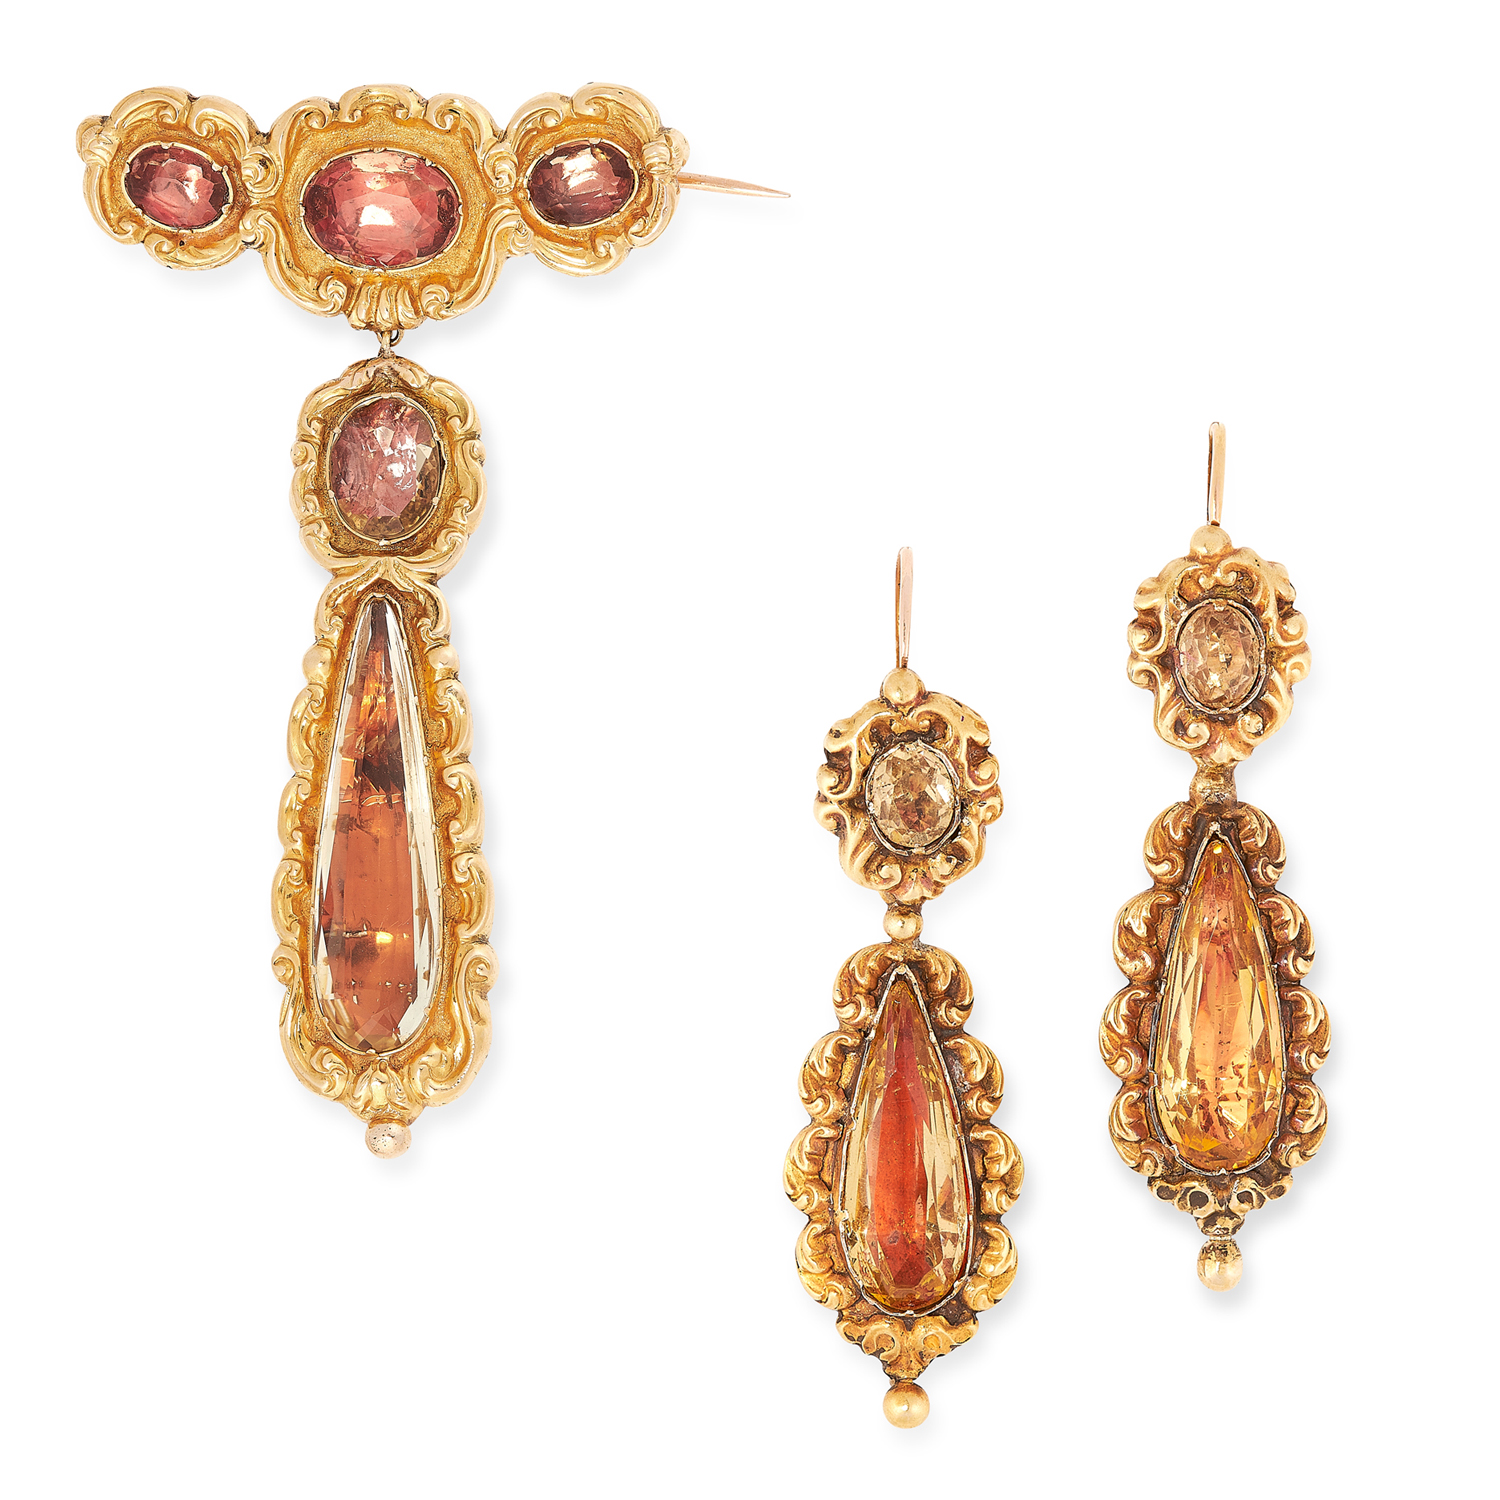 AN ANTIQUE GEORGIAN TOPAZ DEMI PARURE, 19TH CENTURY in high carat yellow gold, each set with oval